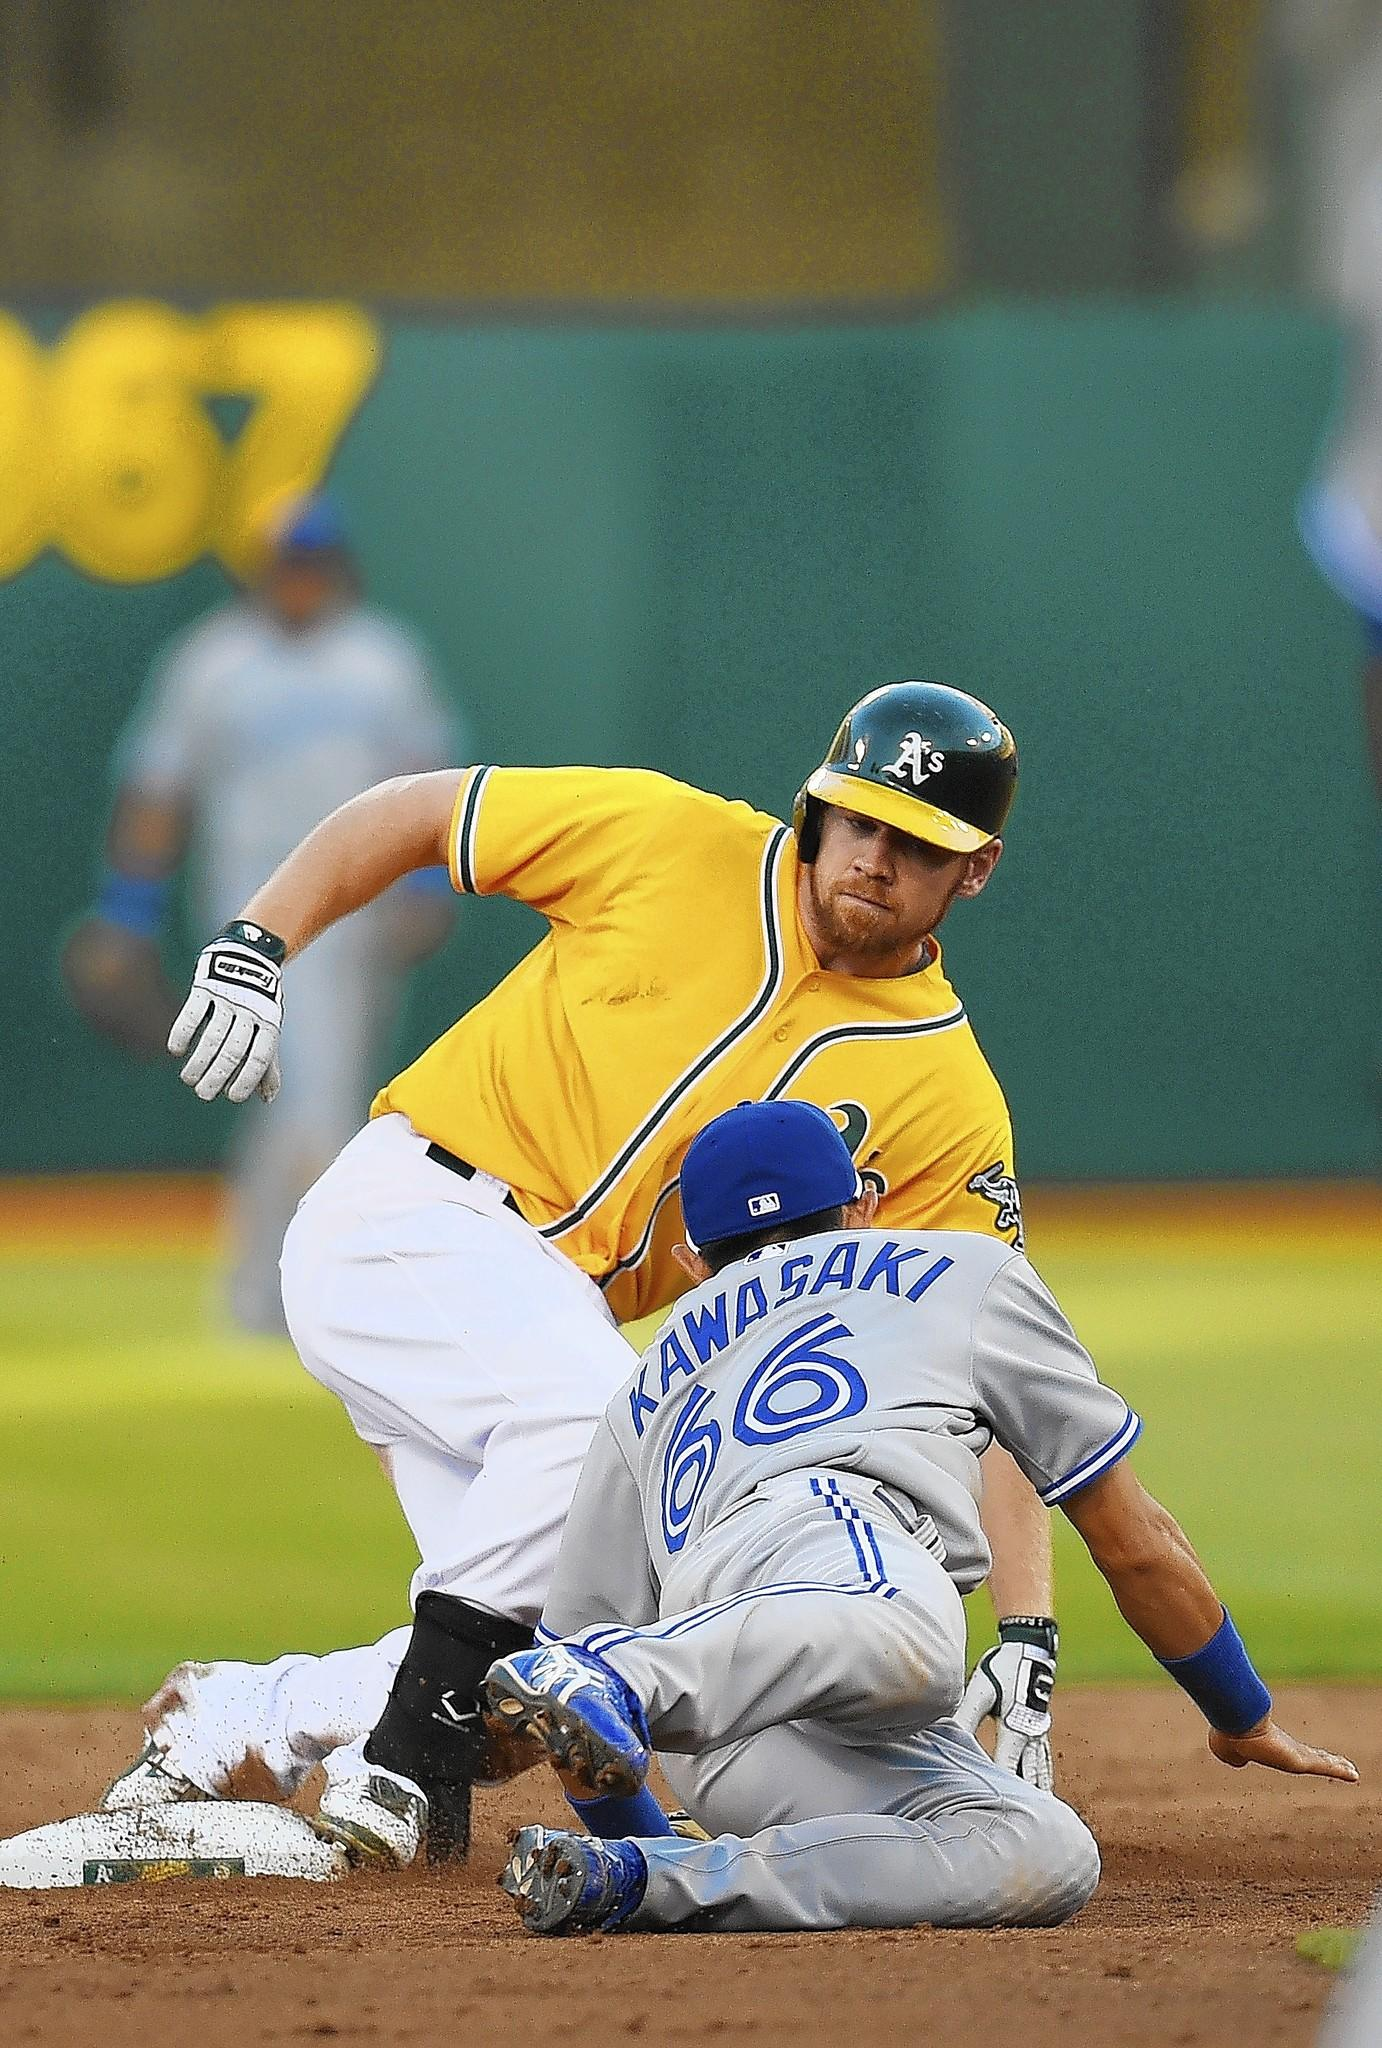 Brandon Moss of Oakland slides into second with a double against Toronto earlier this month.